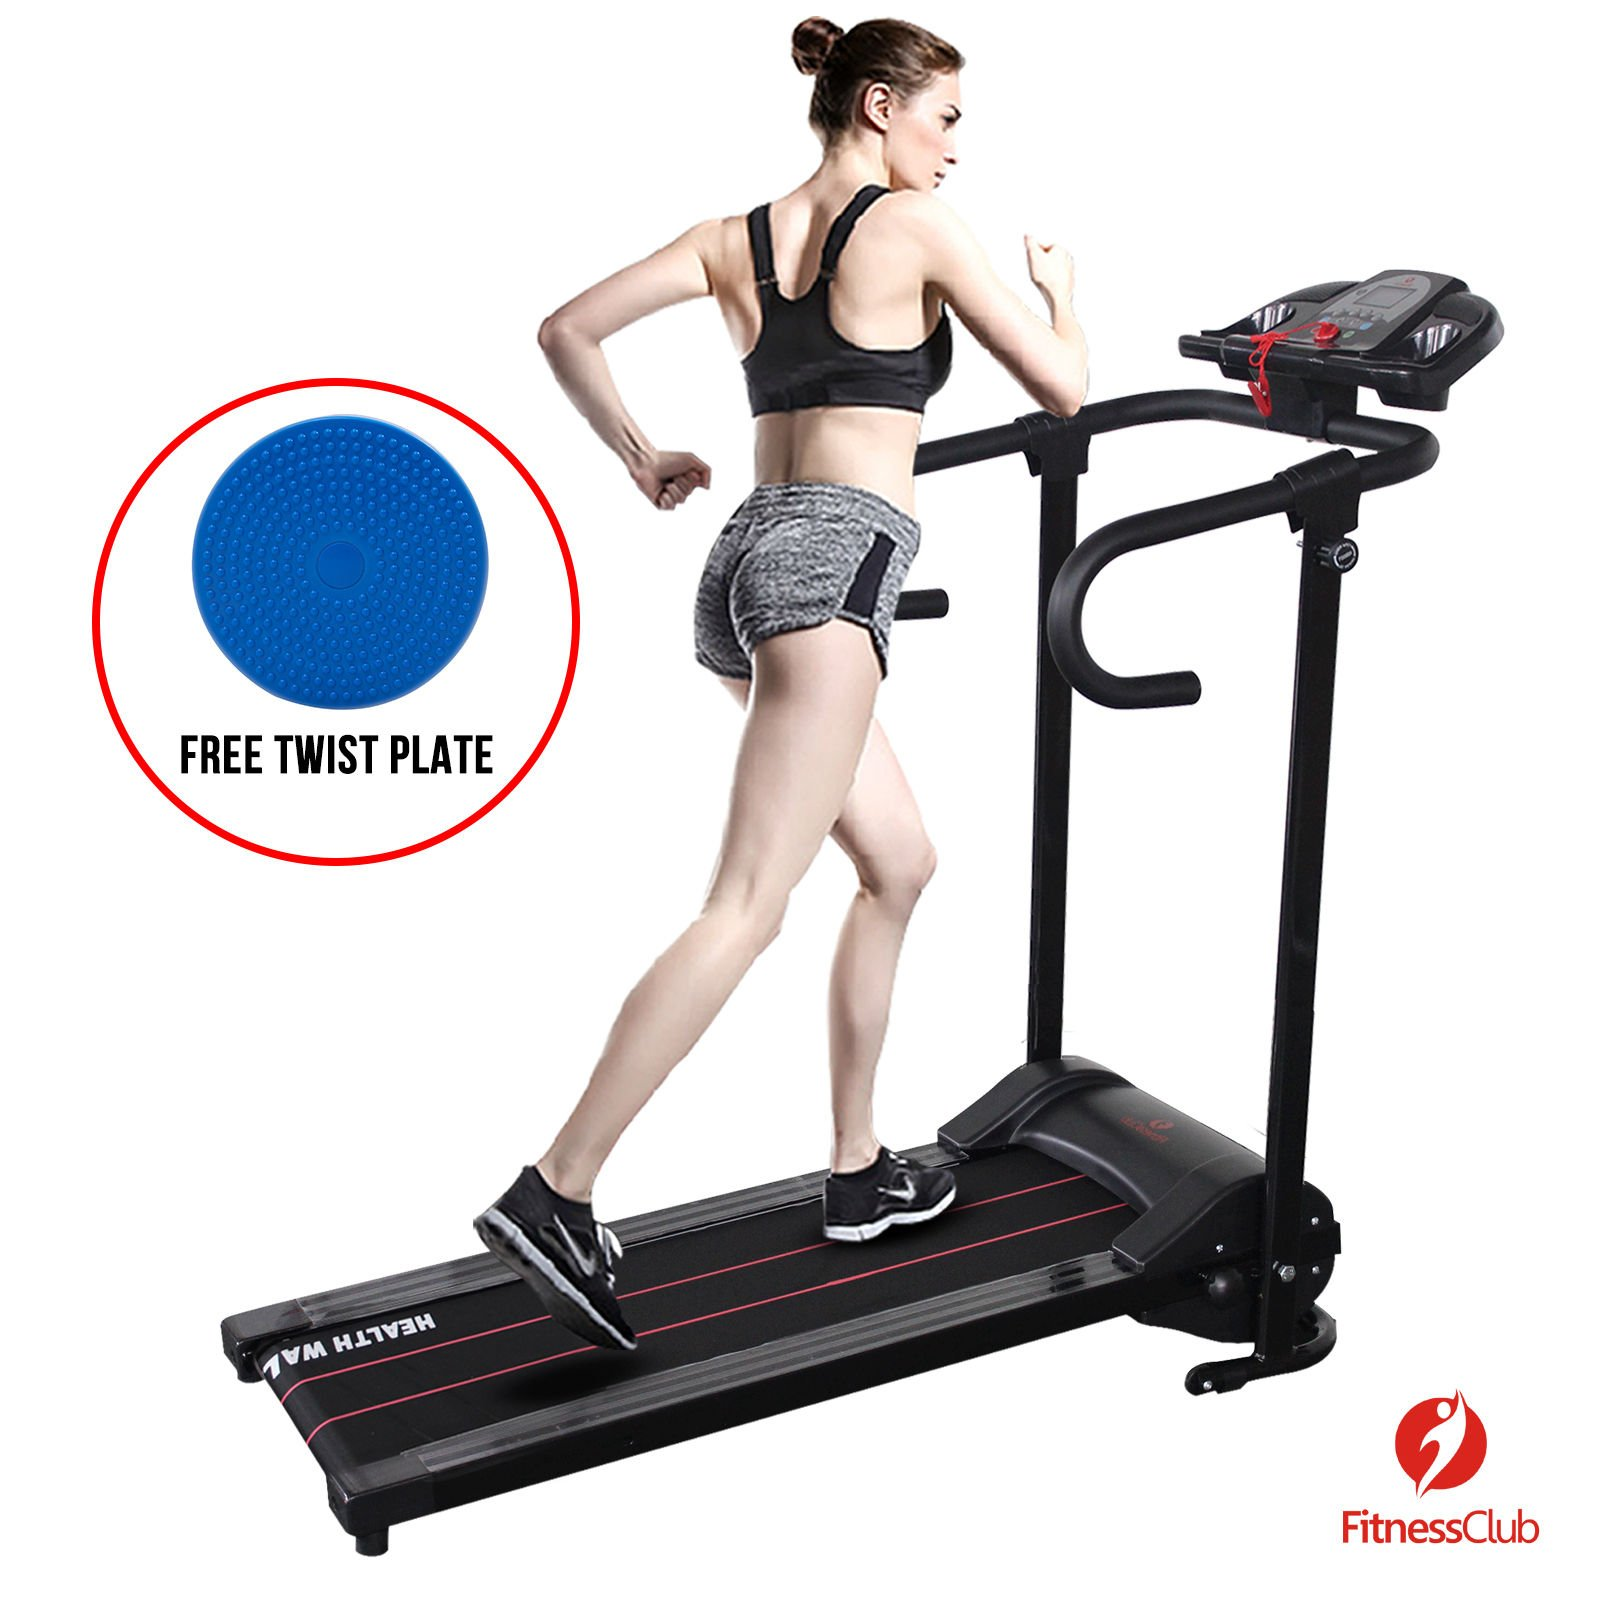 Portable 500W Folding Electric Motorized Treadmill Running Gym Fitness Machine by ZETY (Image #1)